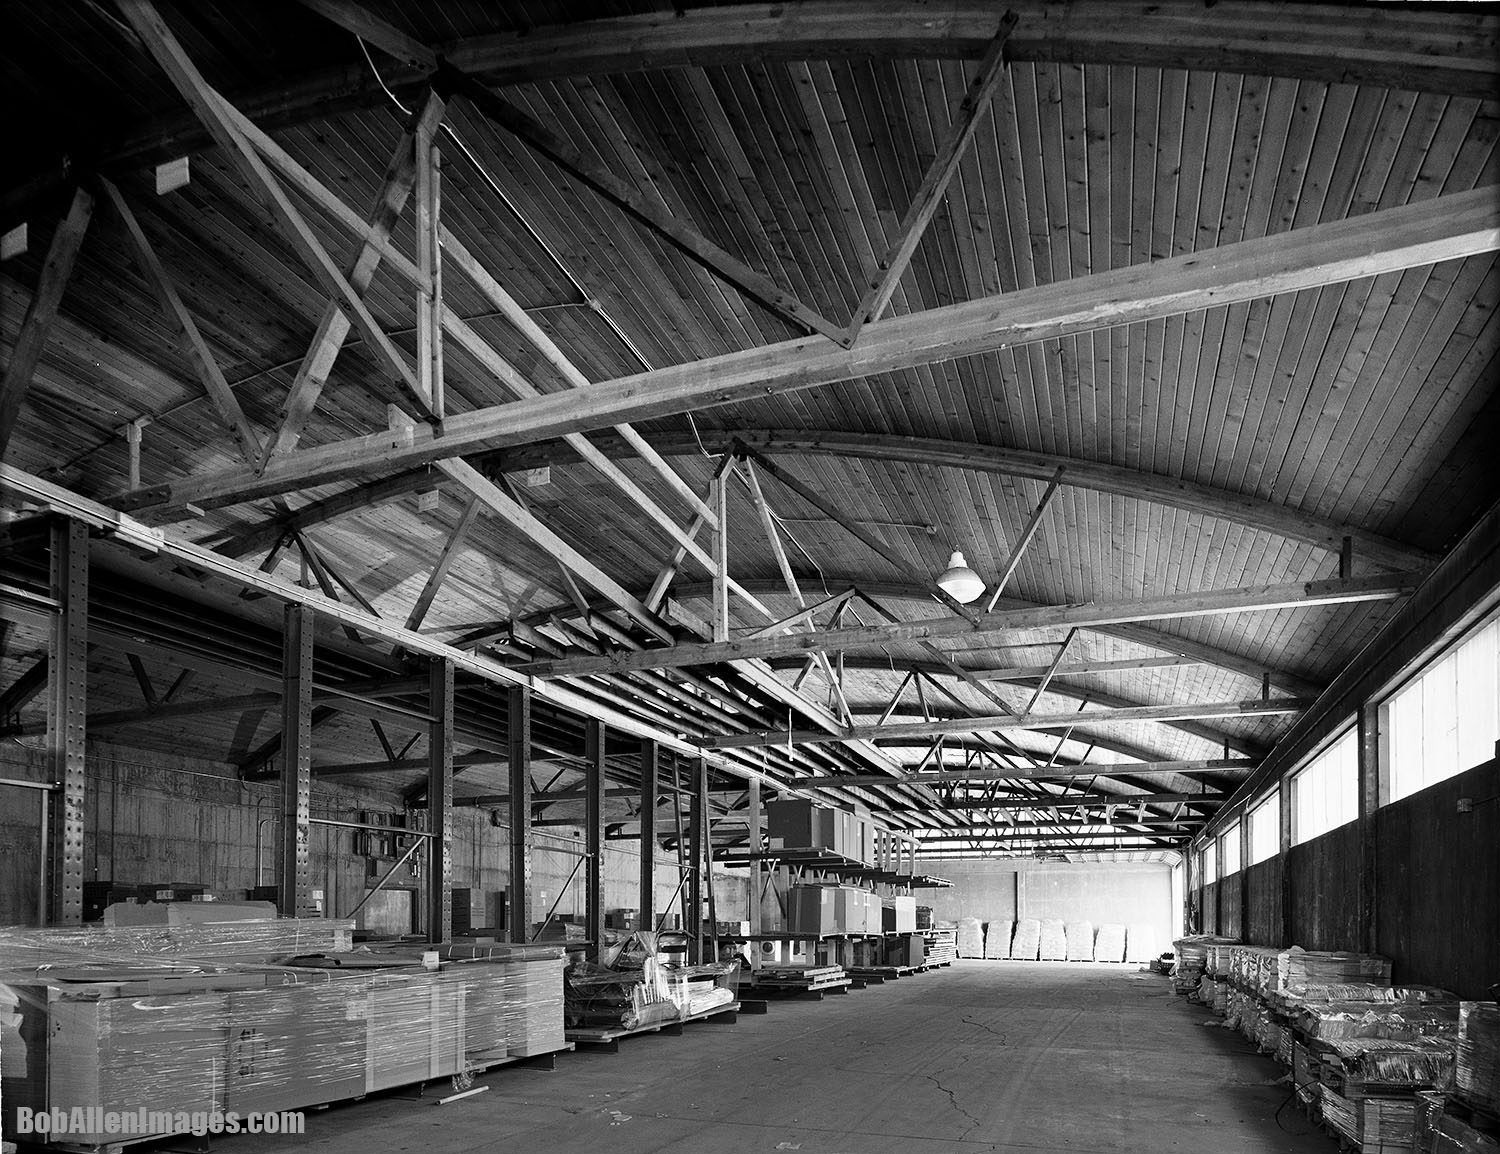 """Prior to the demo permit being issued by the city of Bozeman, the Kenyon Noble Lumber building was photographed in accordance with the Historic American Buildings Survey requirements to use a 4""""x5"""" view camera with film. How old school...?"""